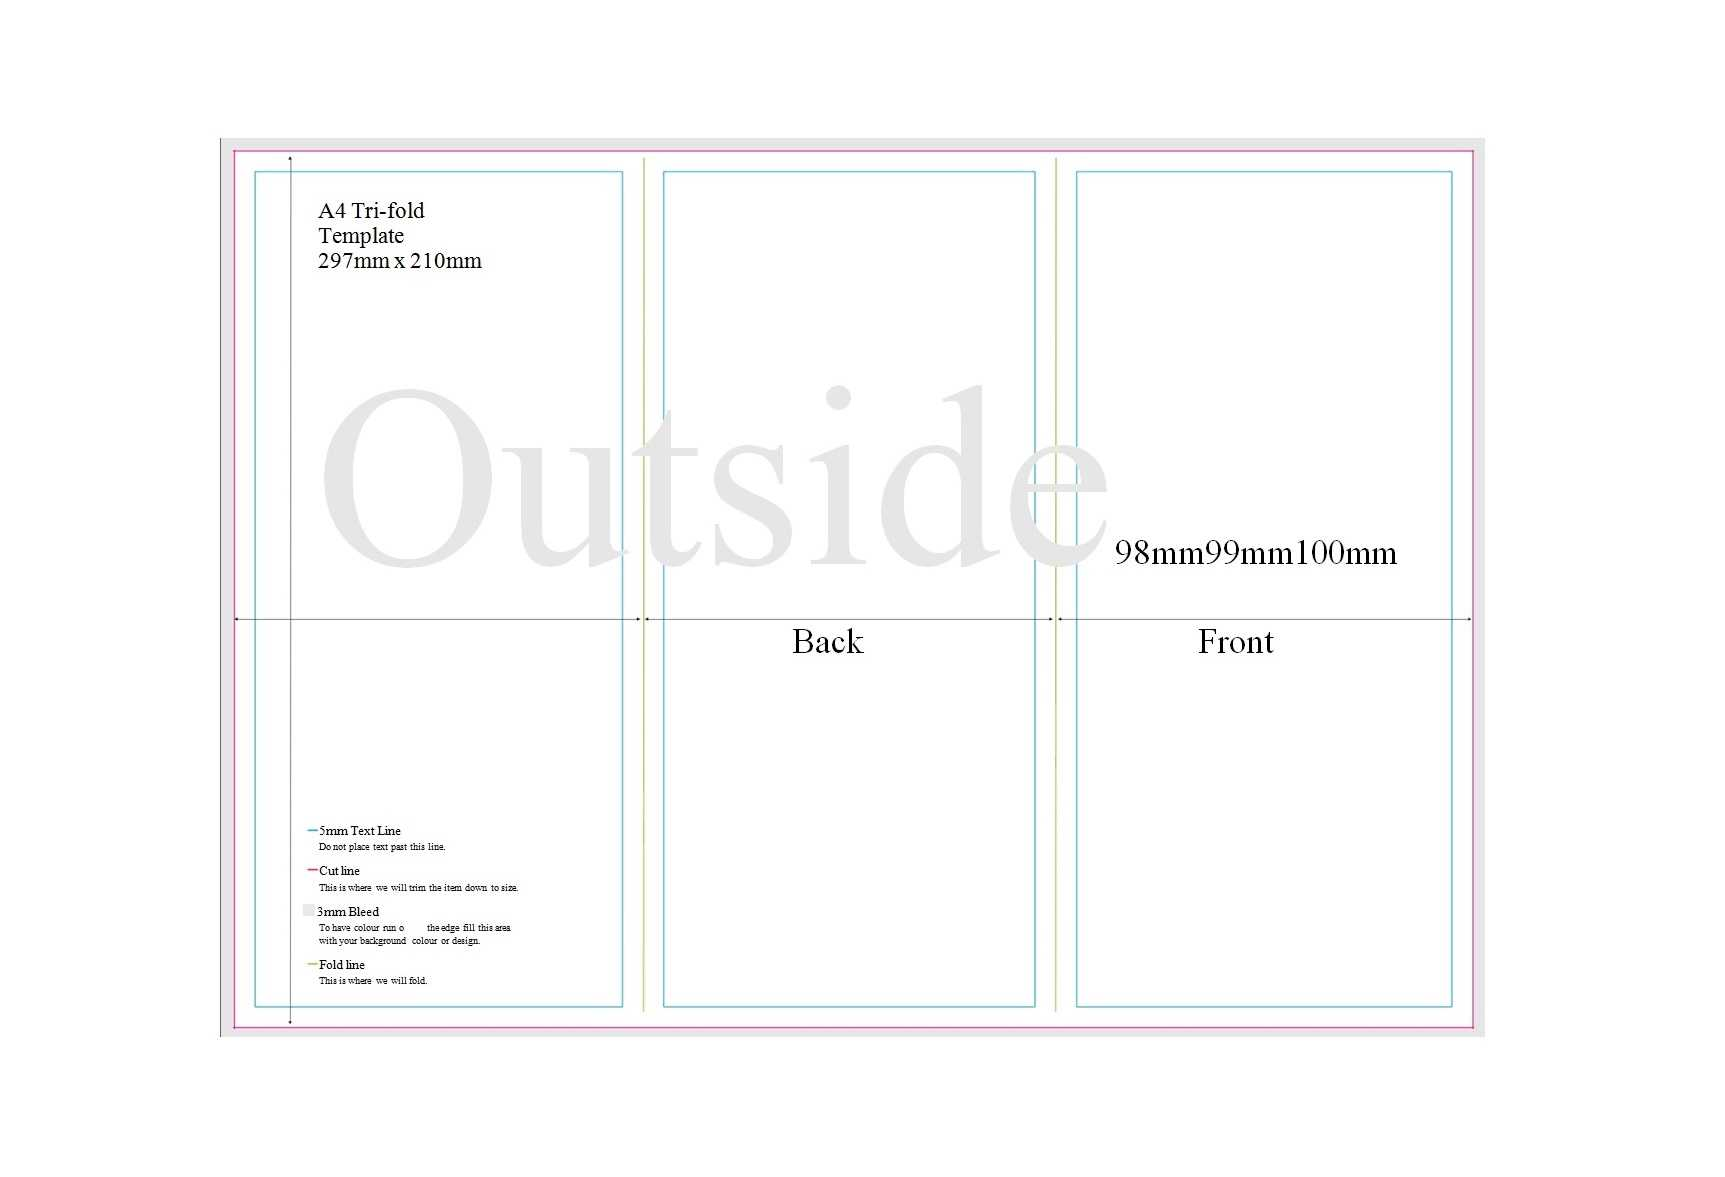 50 Free Pamphlet Templates [Word / Google Docs] ᐅ Templatelab Throughout Brochure Template For Google Docs